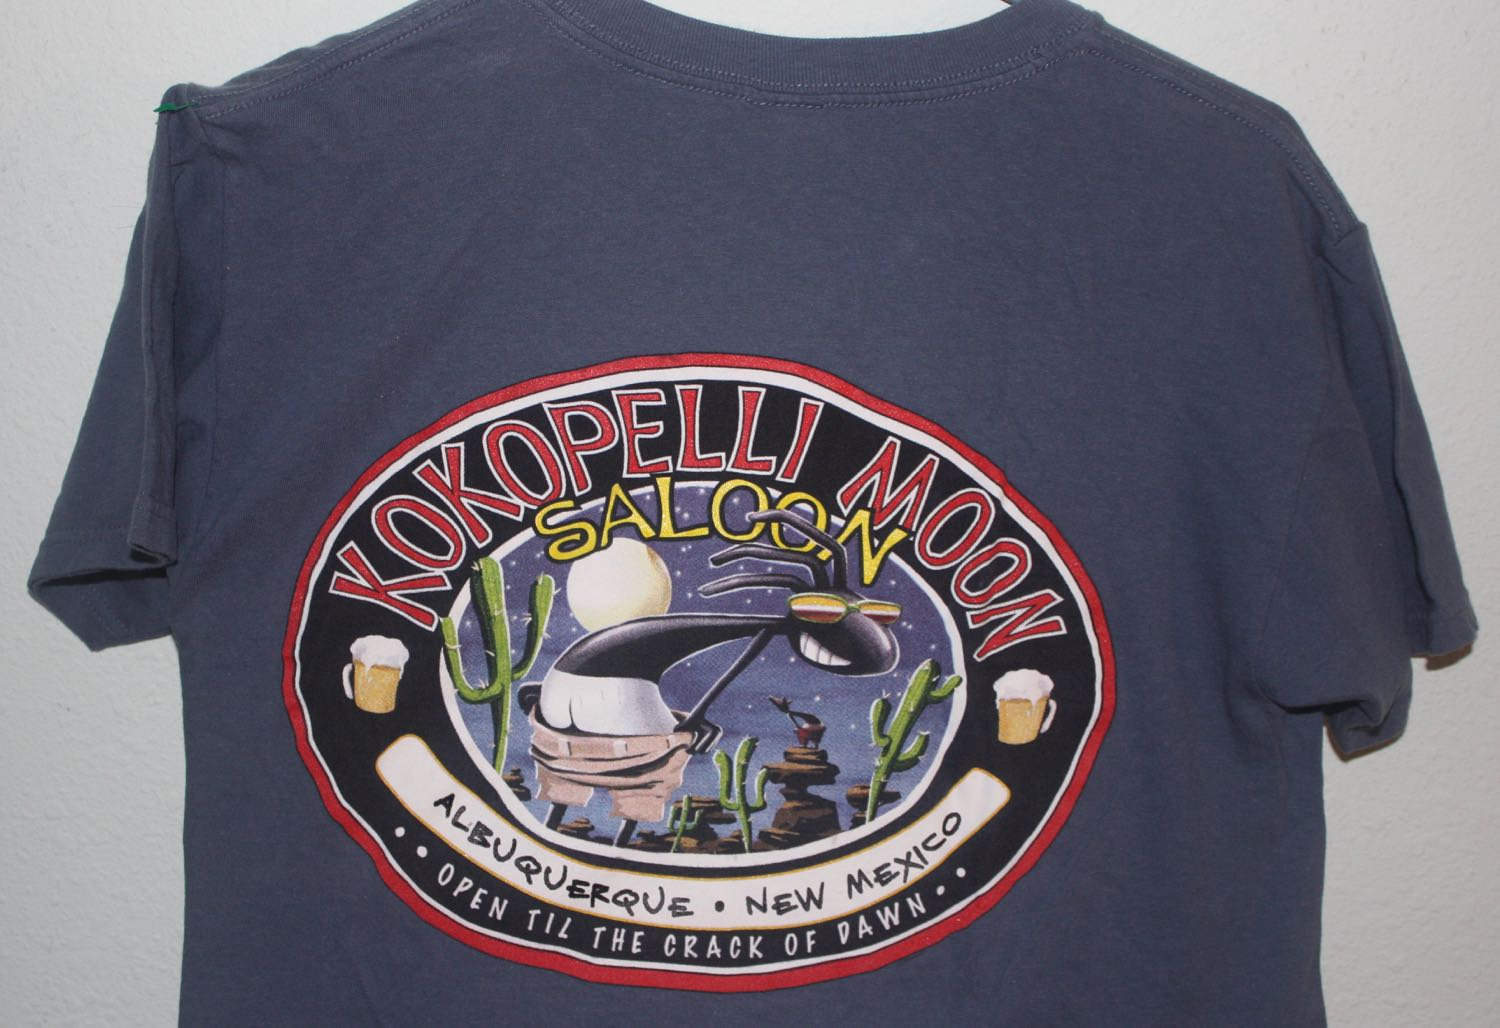 Kokopelli Moon Saloon Tee